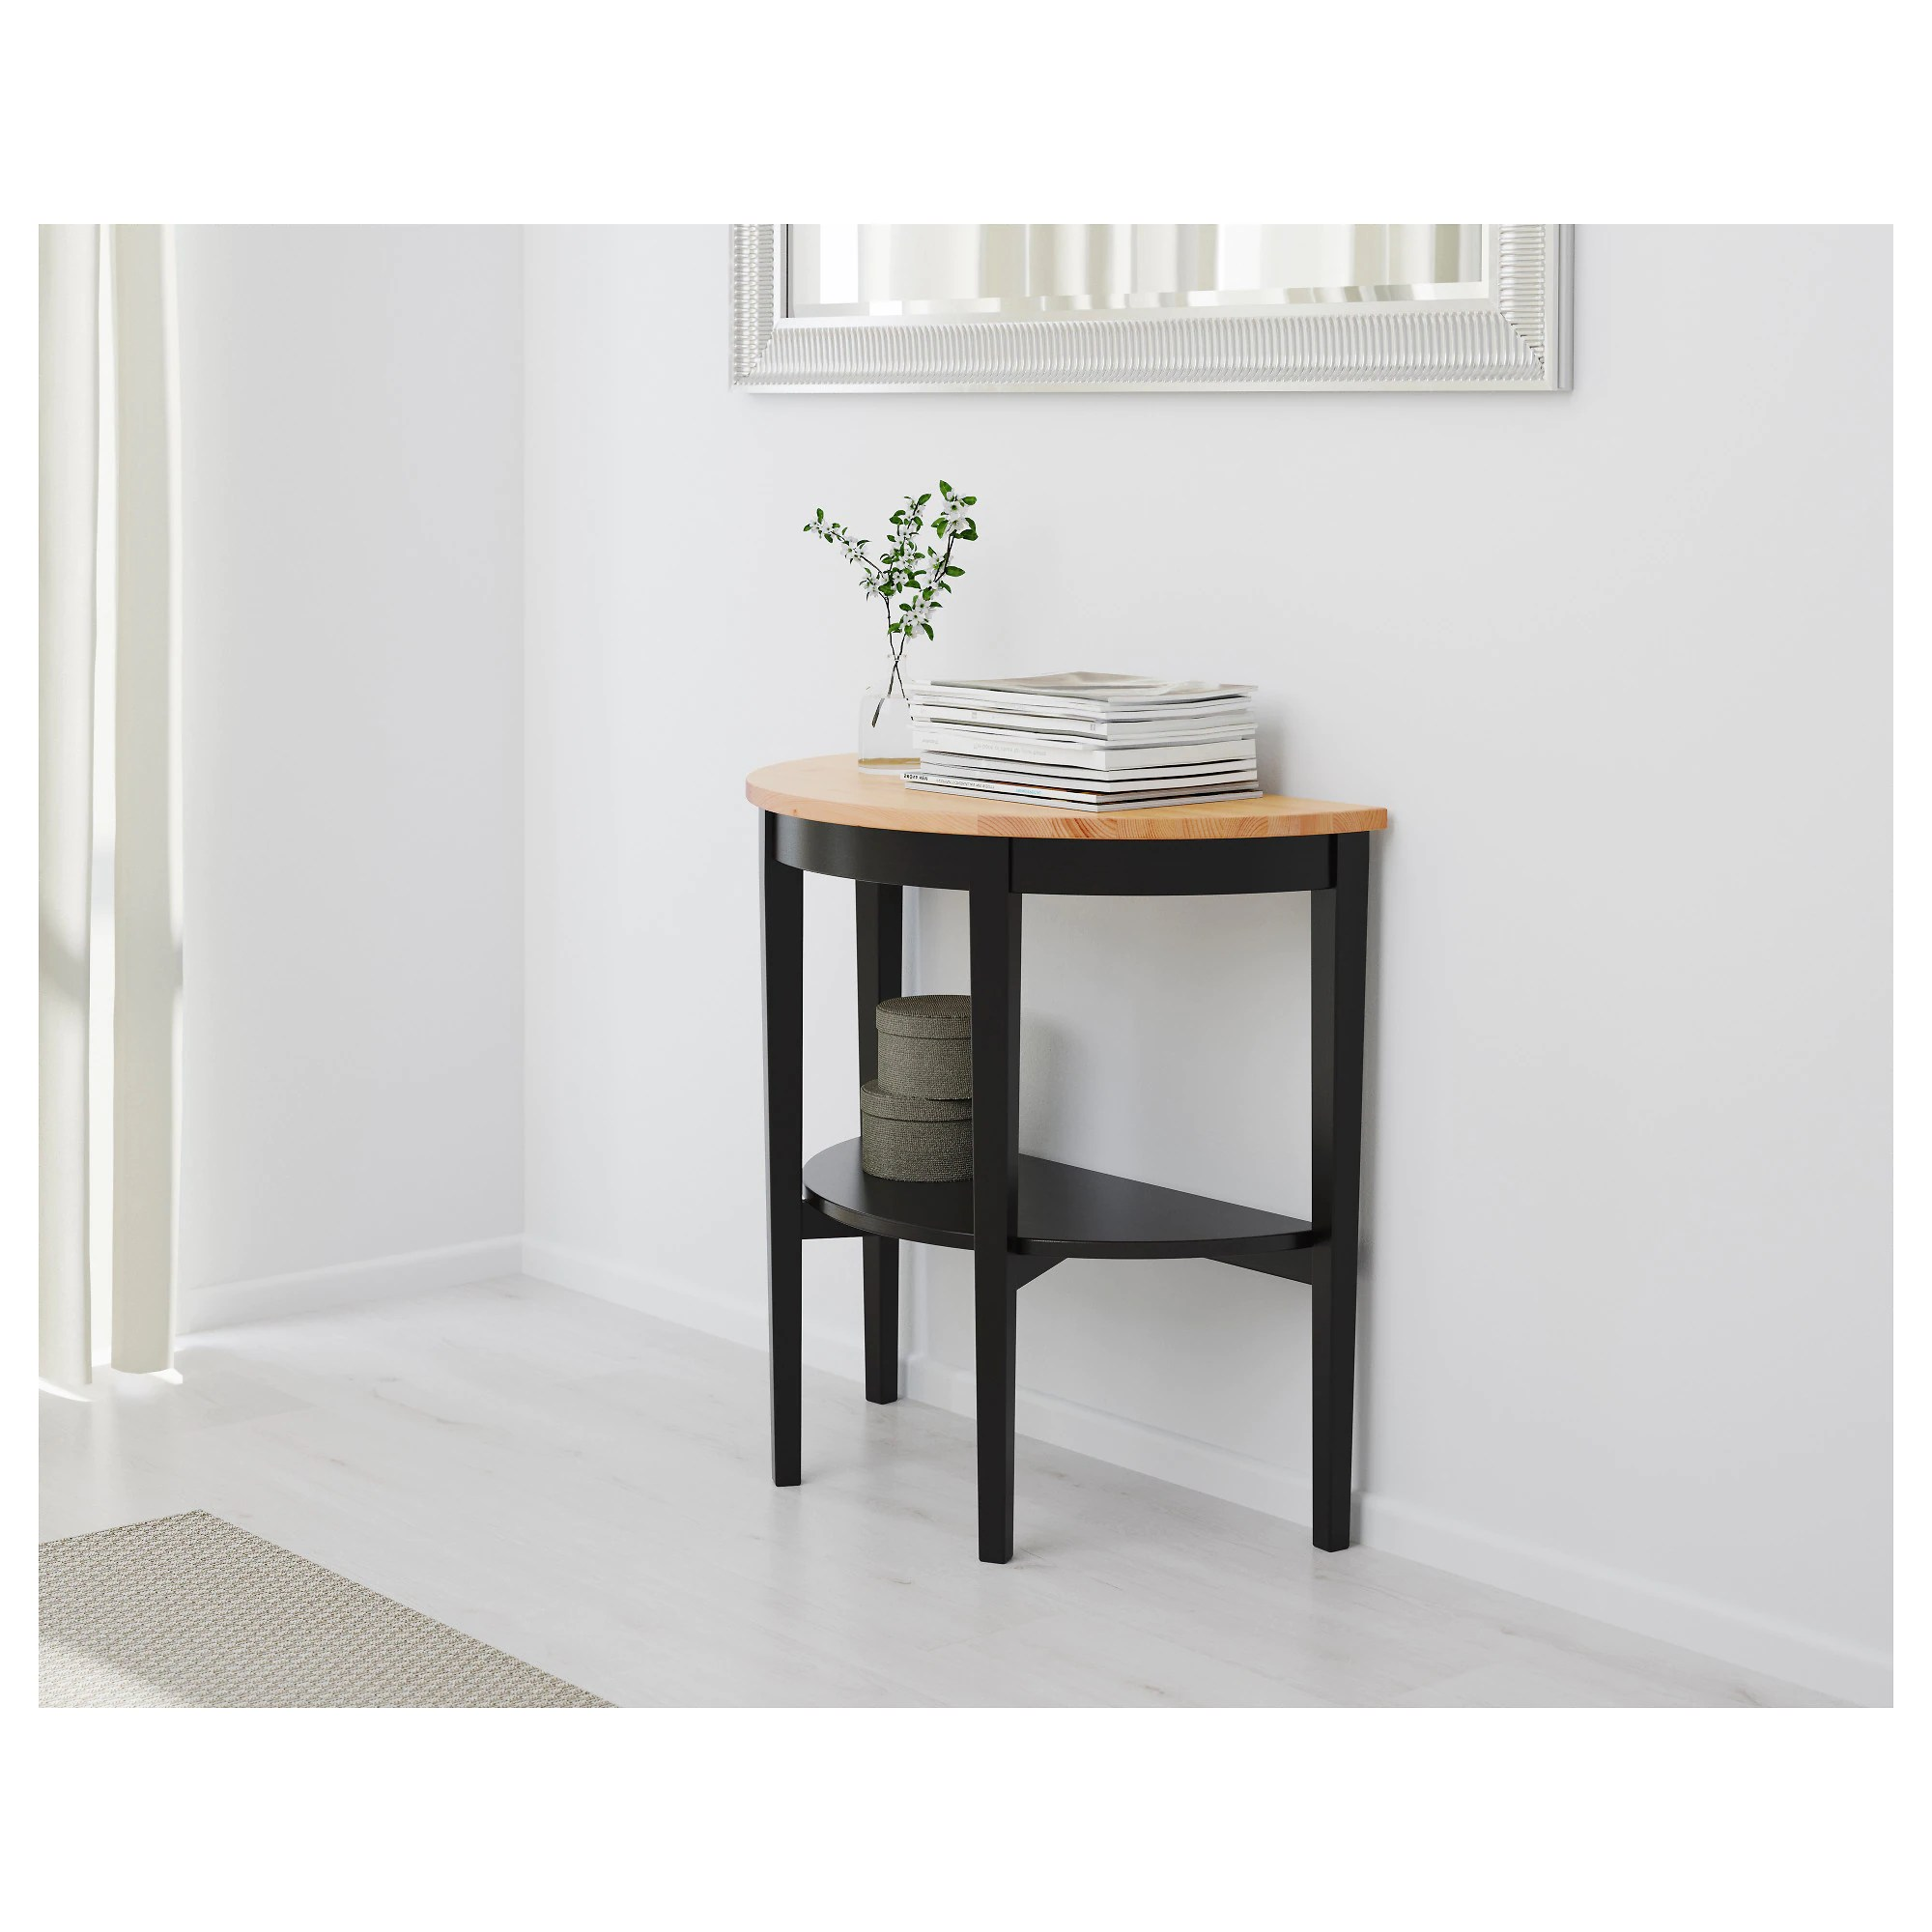 Table Console Pliante Ikea Arkelstorp Console Table Black